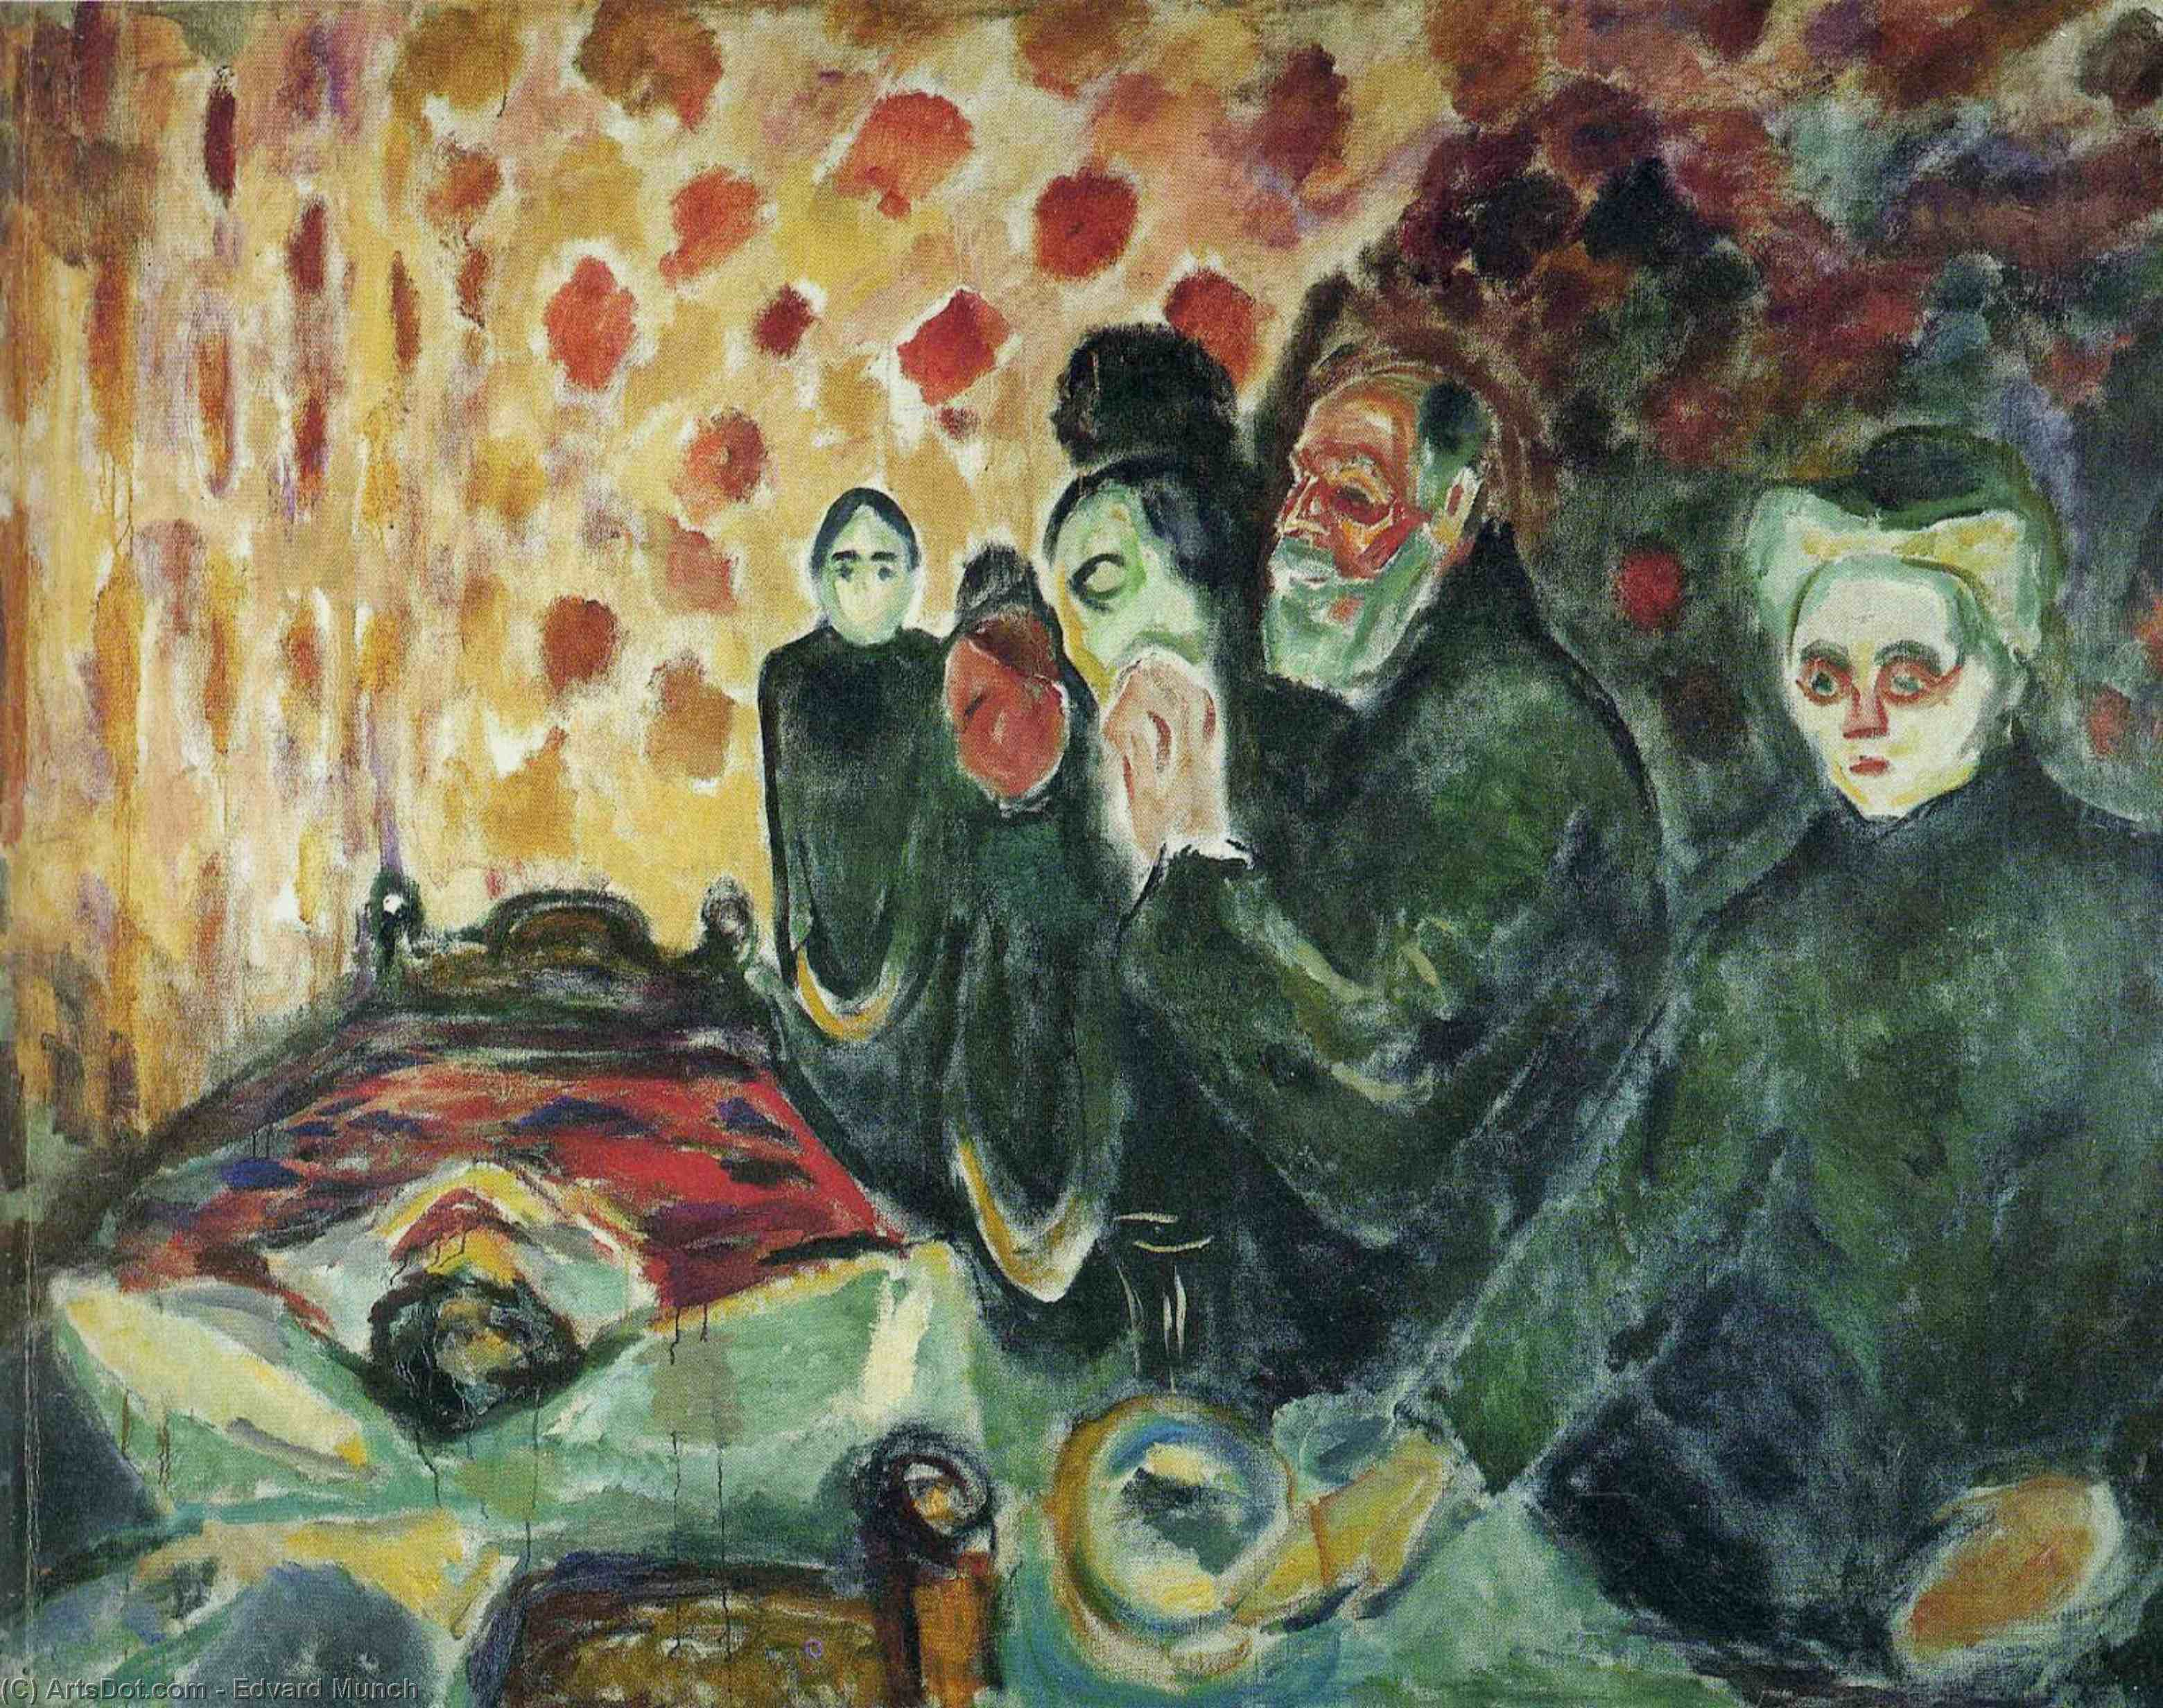 WikiOO.org - Encyclopedia of Fine Arts - Schilderen, Artwork Edvard Munch - Near the bed of death (fever)